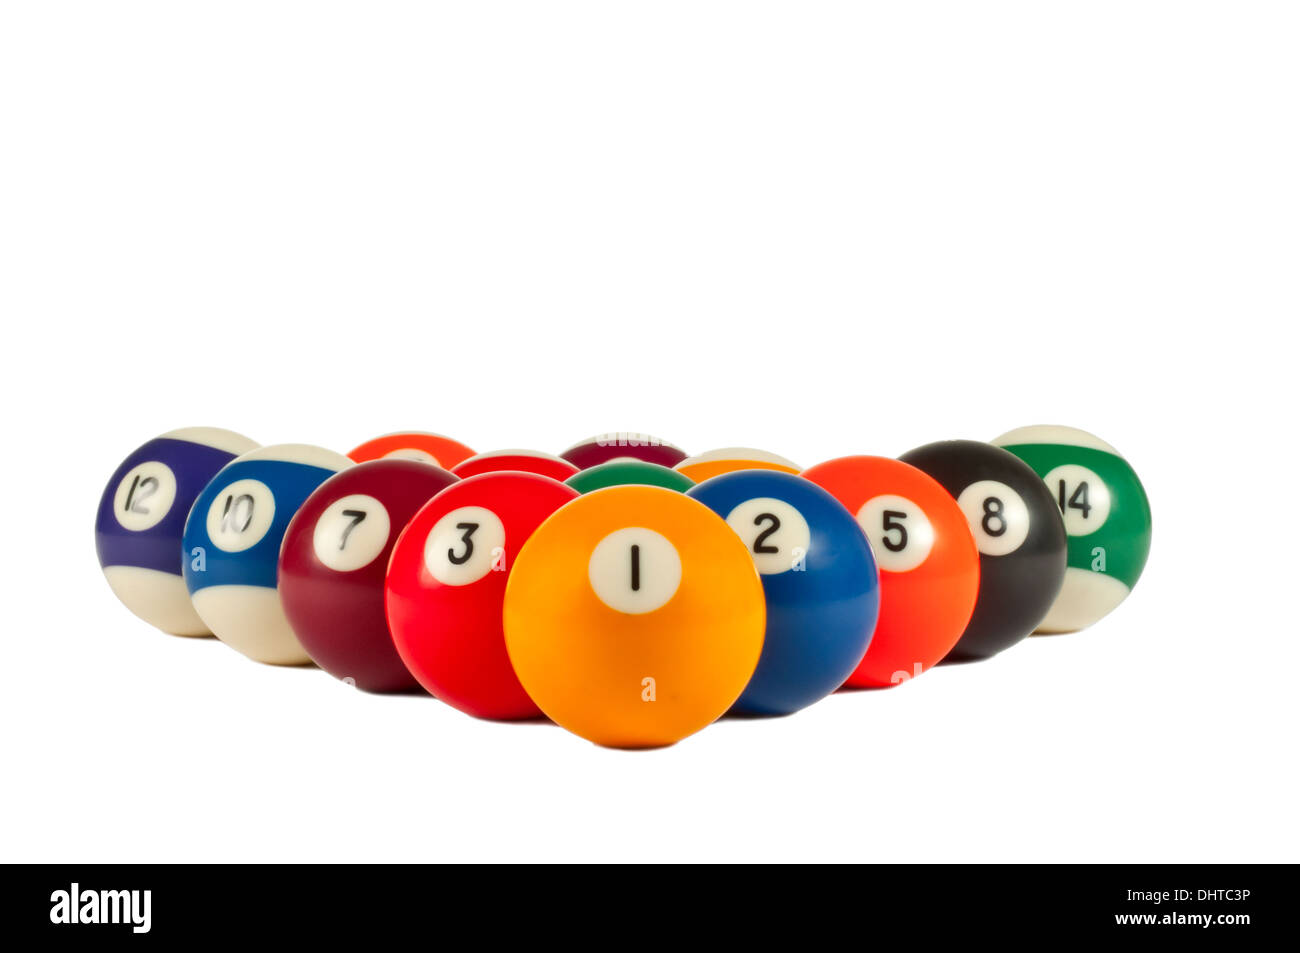 Pictures of Pool Balls isolated with white background. - Stock Image